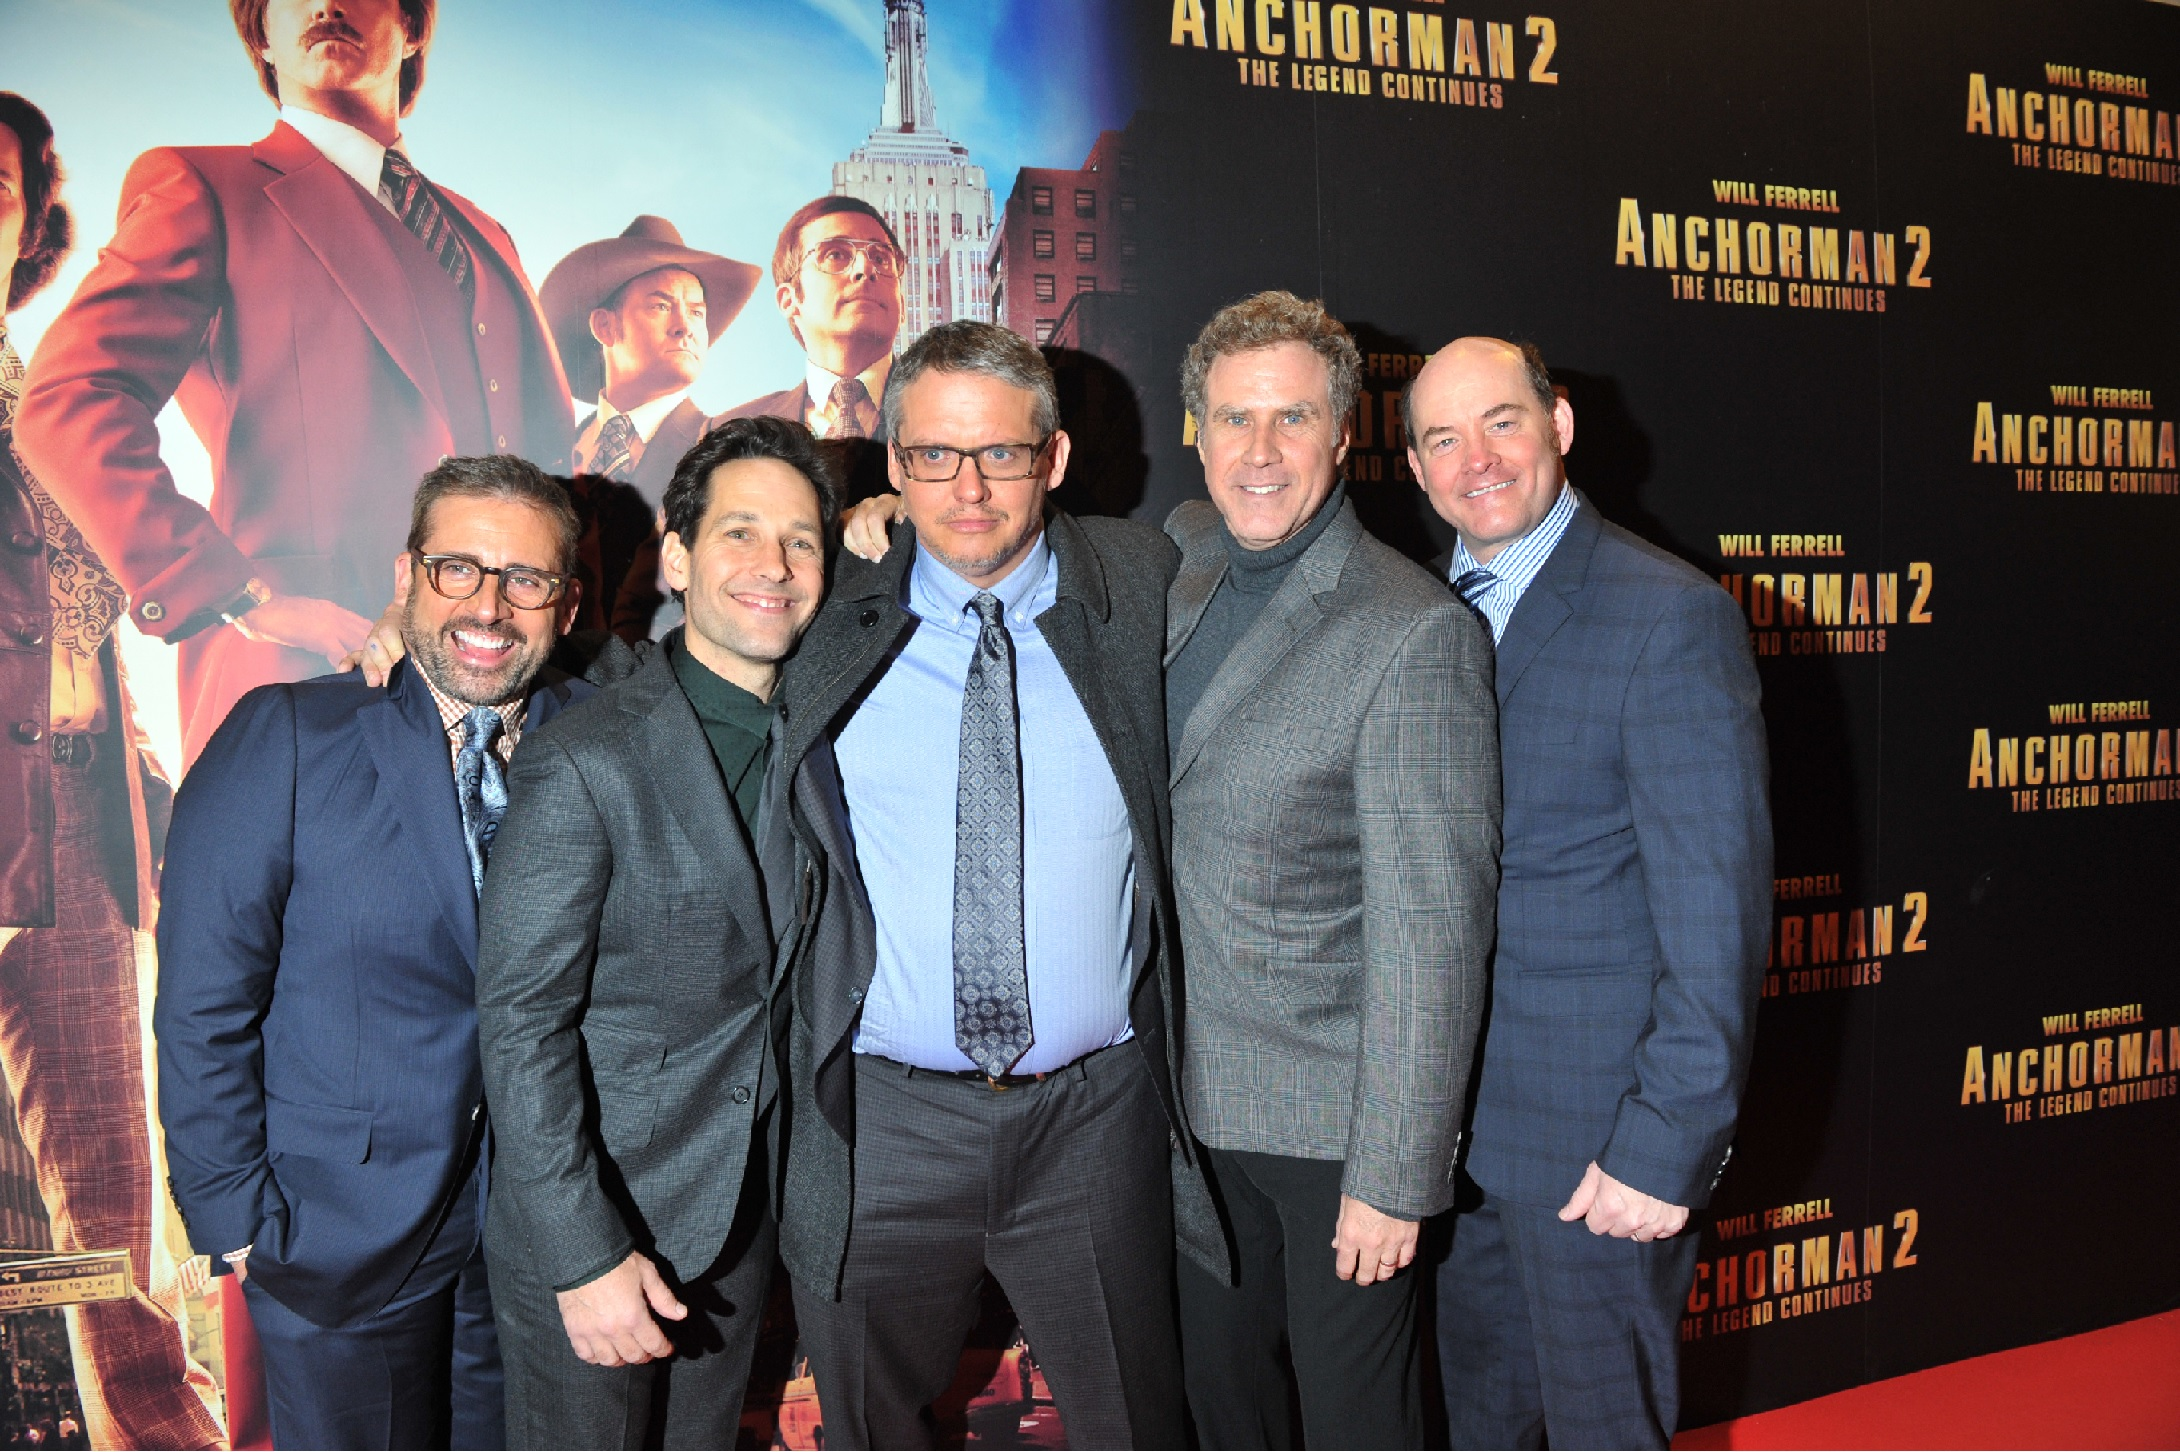 Anchorman 2 Dublin 11 Dublin Premiere Photos of Anchorman 2: The Legend Continues Released